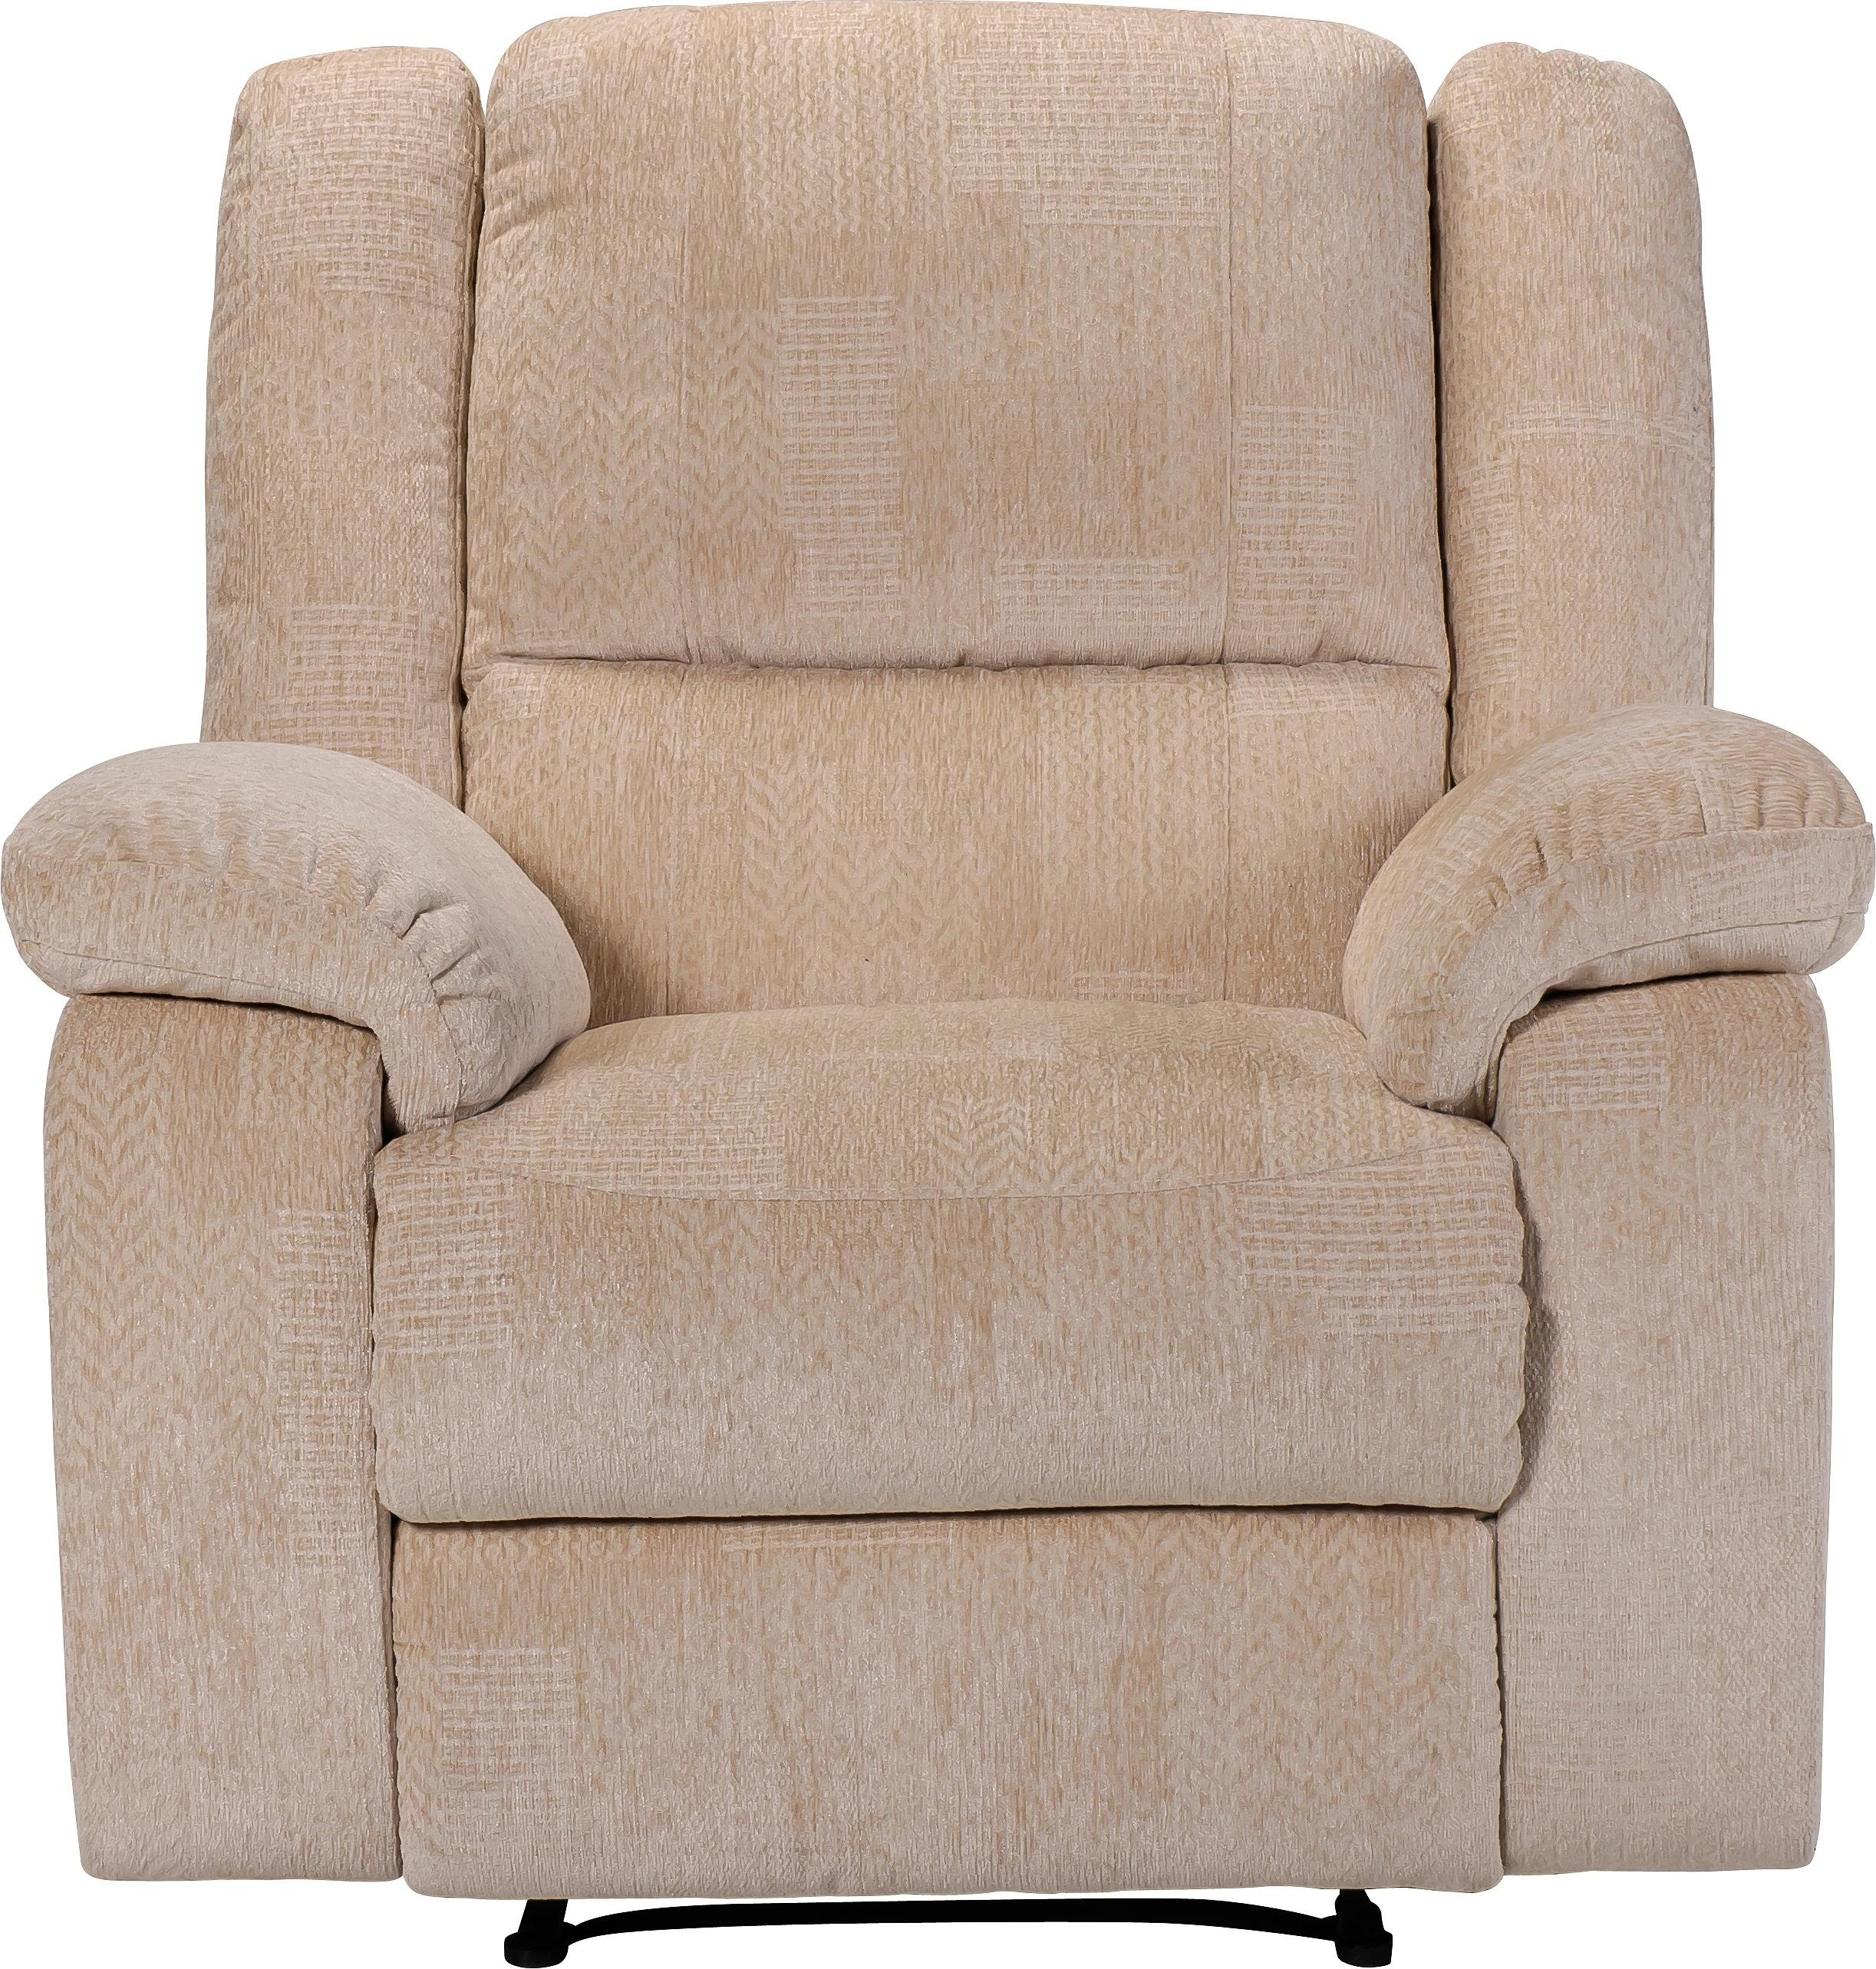 Collection Shelly Fabric Manual Recliner Chair - Natural  sc 1 st  Argos & Neutrals Armchairs and chairs | Argos islam-shia.org